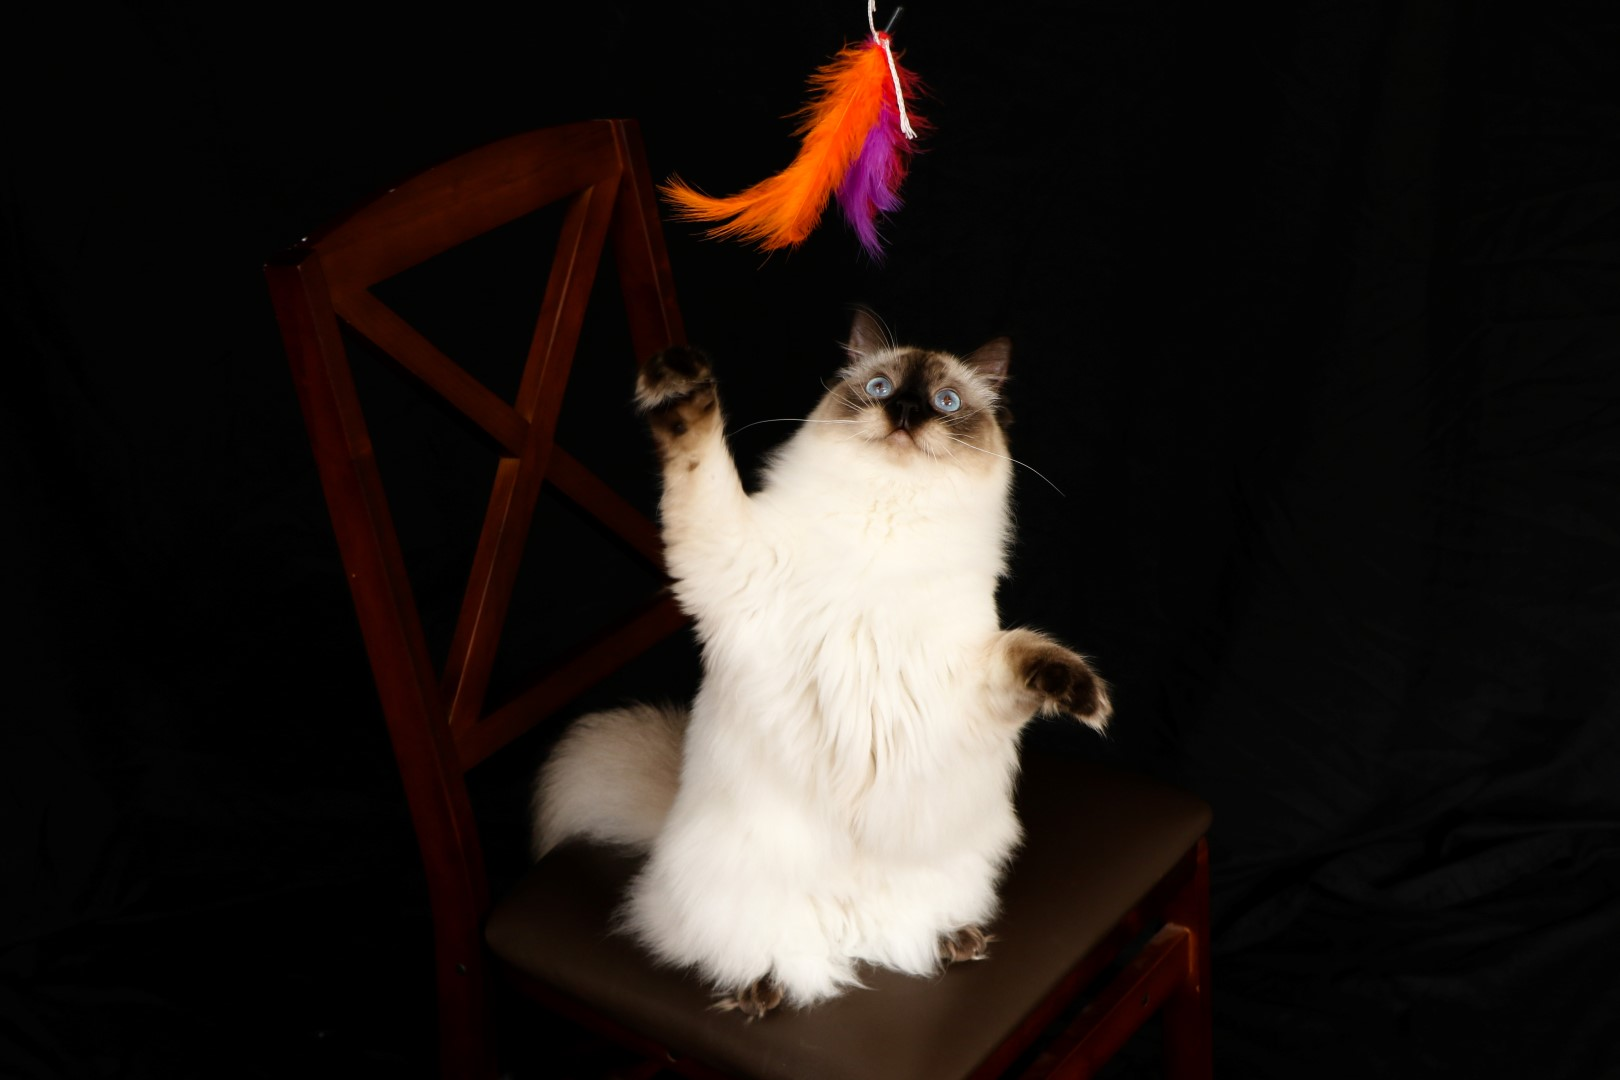 Ragdoll Cat playing with feather